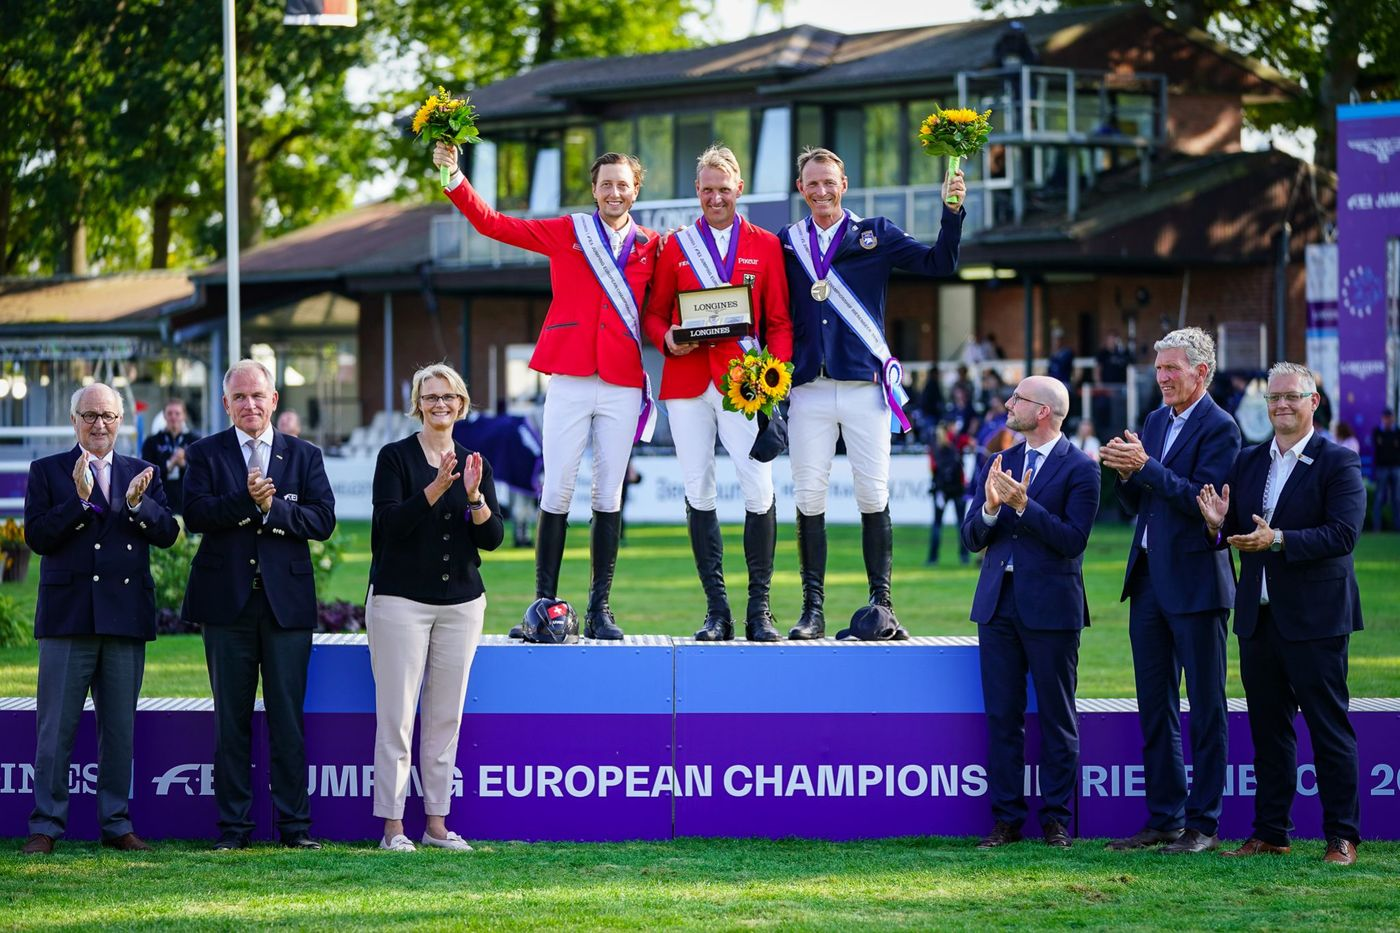 Longines Show Jumping Event: Europe's pre-eminent riders secured victories at the Longines FEI Jumping European Championship 2021   1